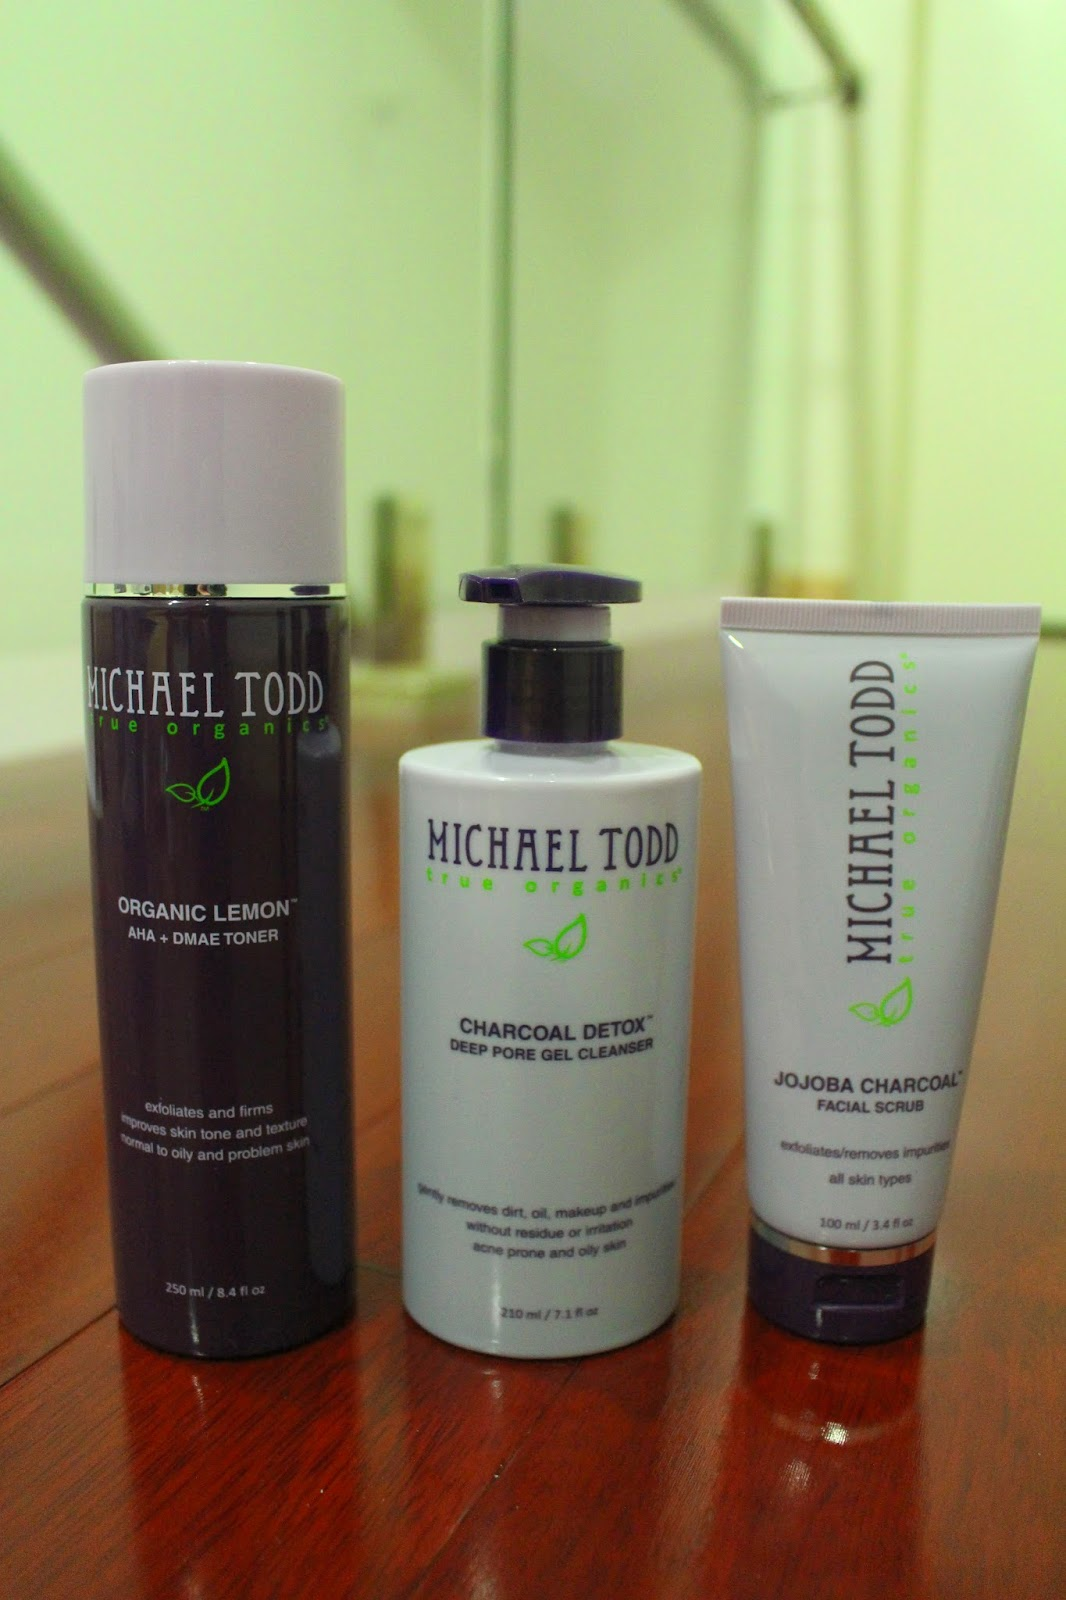 Michael Todd Charcoal Detox Deep Pore Gel Cleanser, Jojoba Charcoal Facial Scrub and Organic Lemon AHA + DMAE Toner